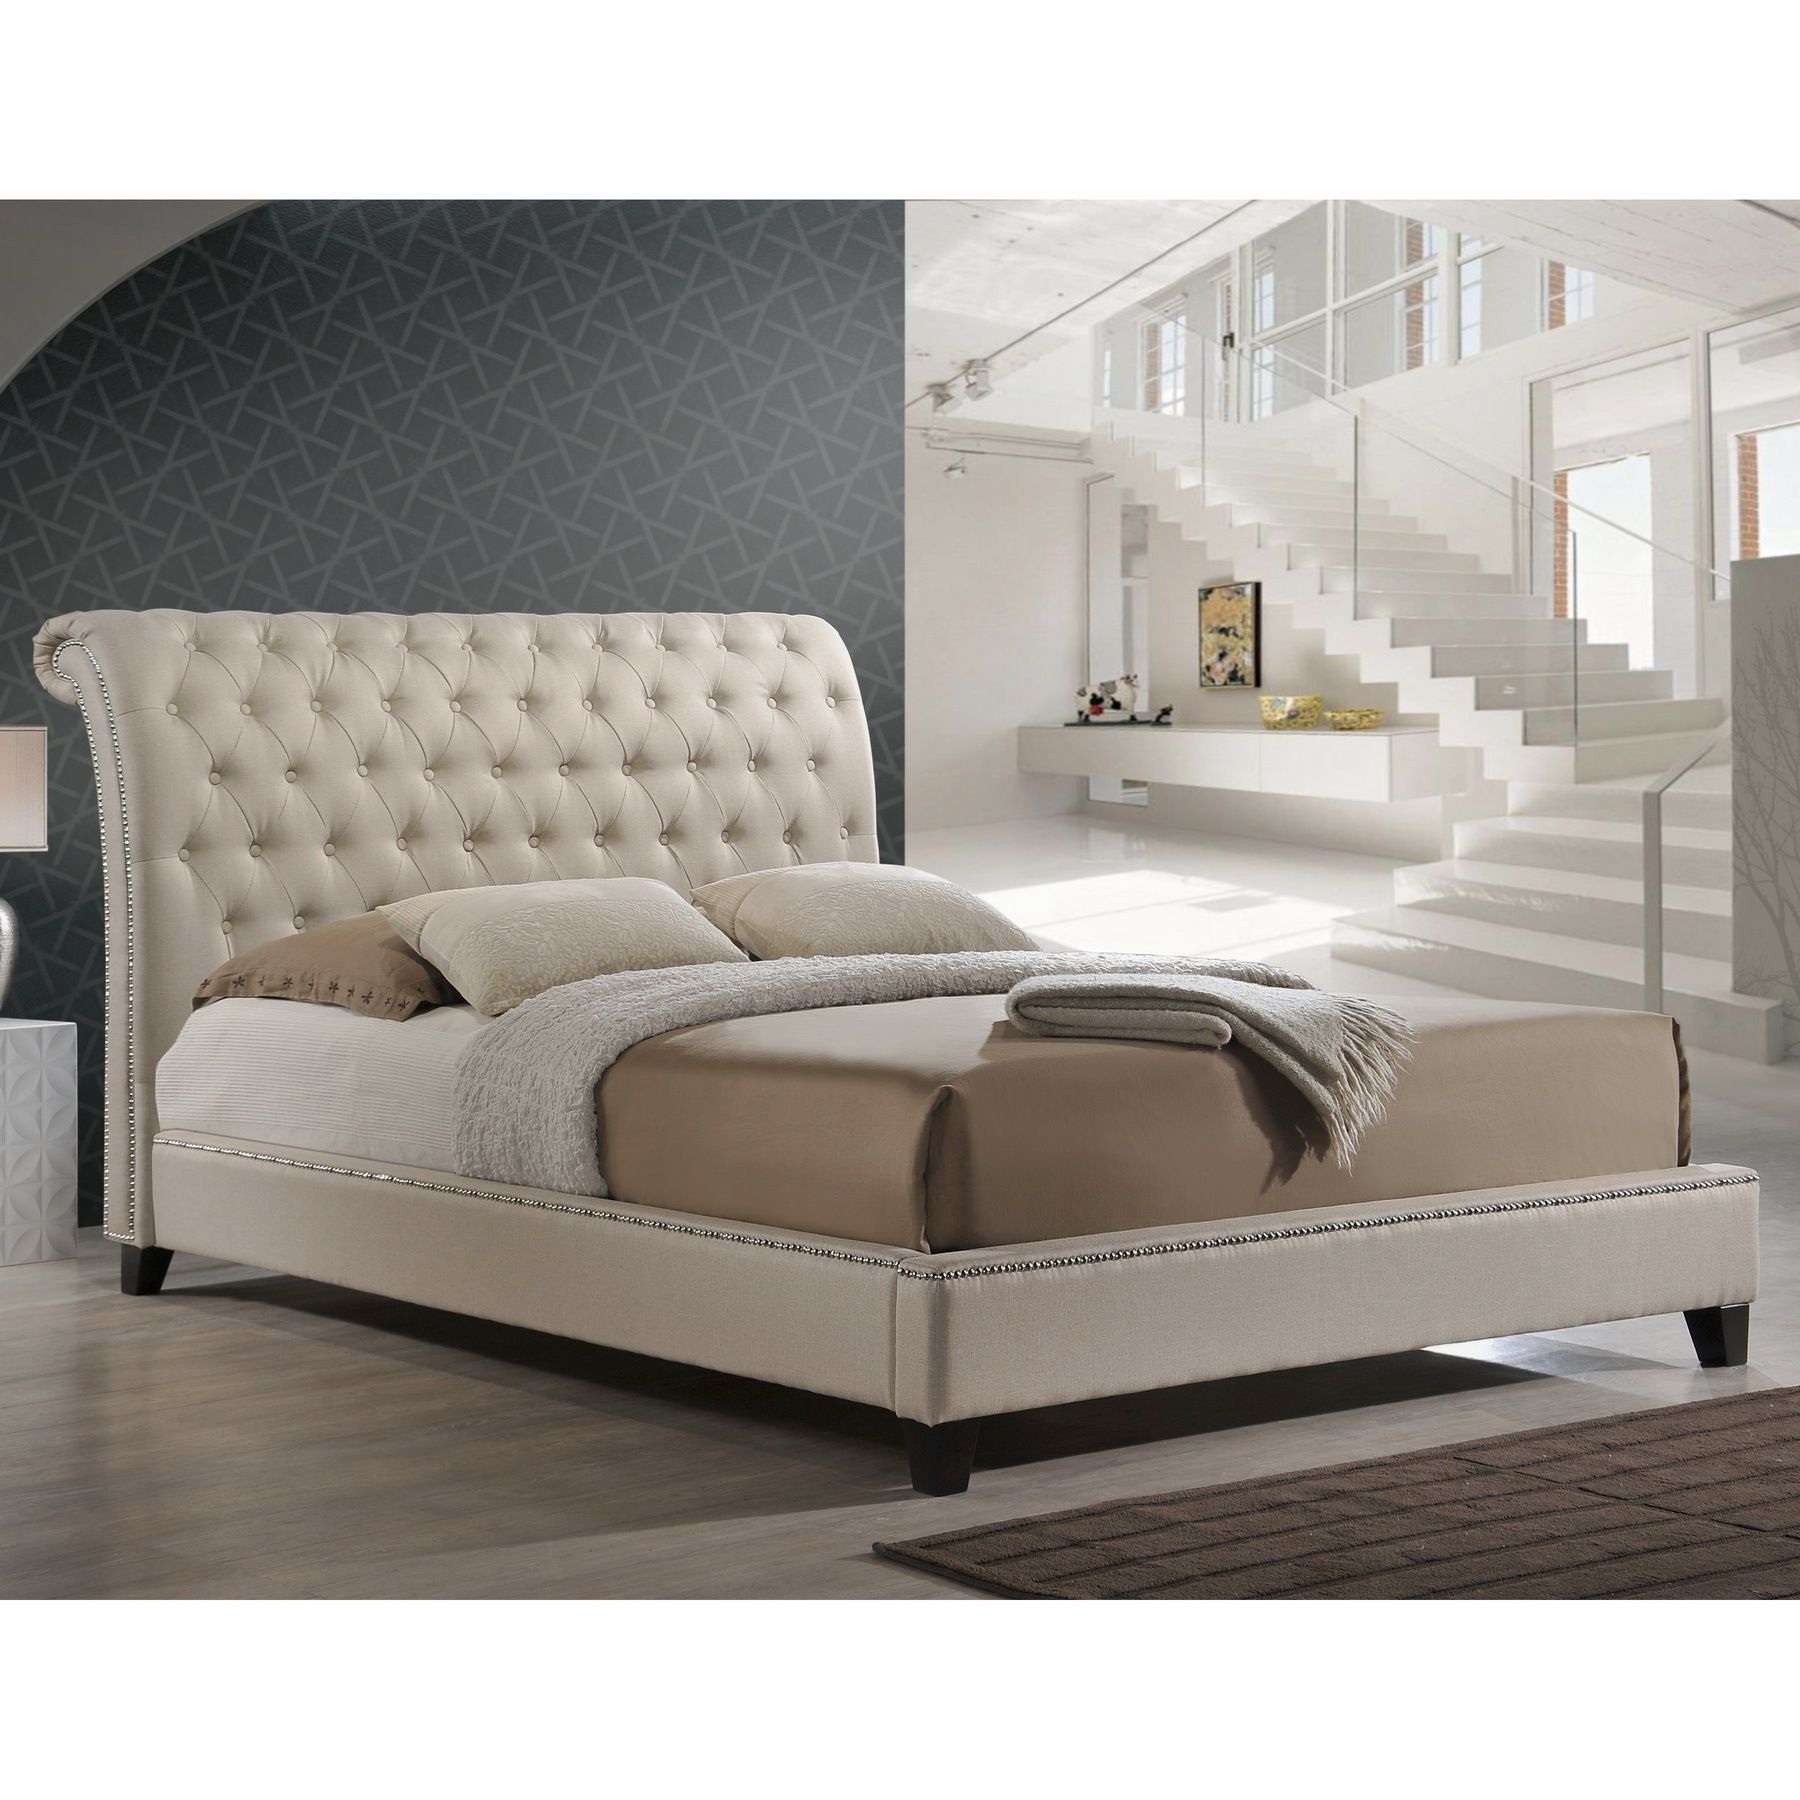 Our Jazmin Designer Bed Shines With Fabulous Features A Scroll